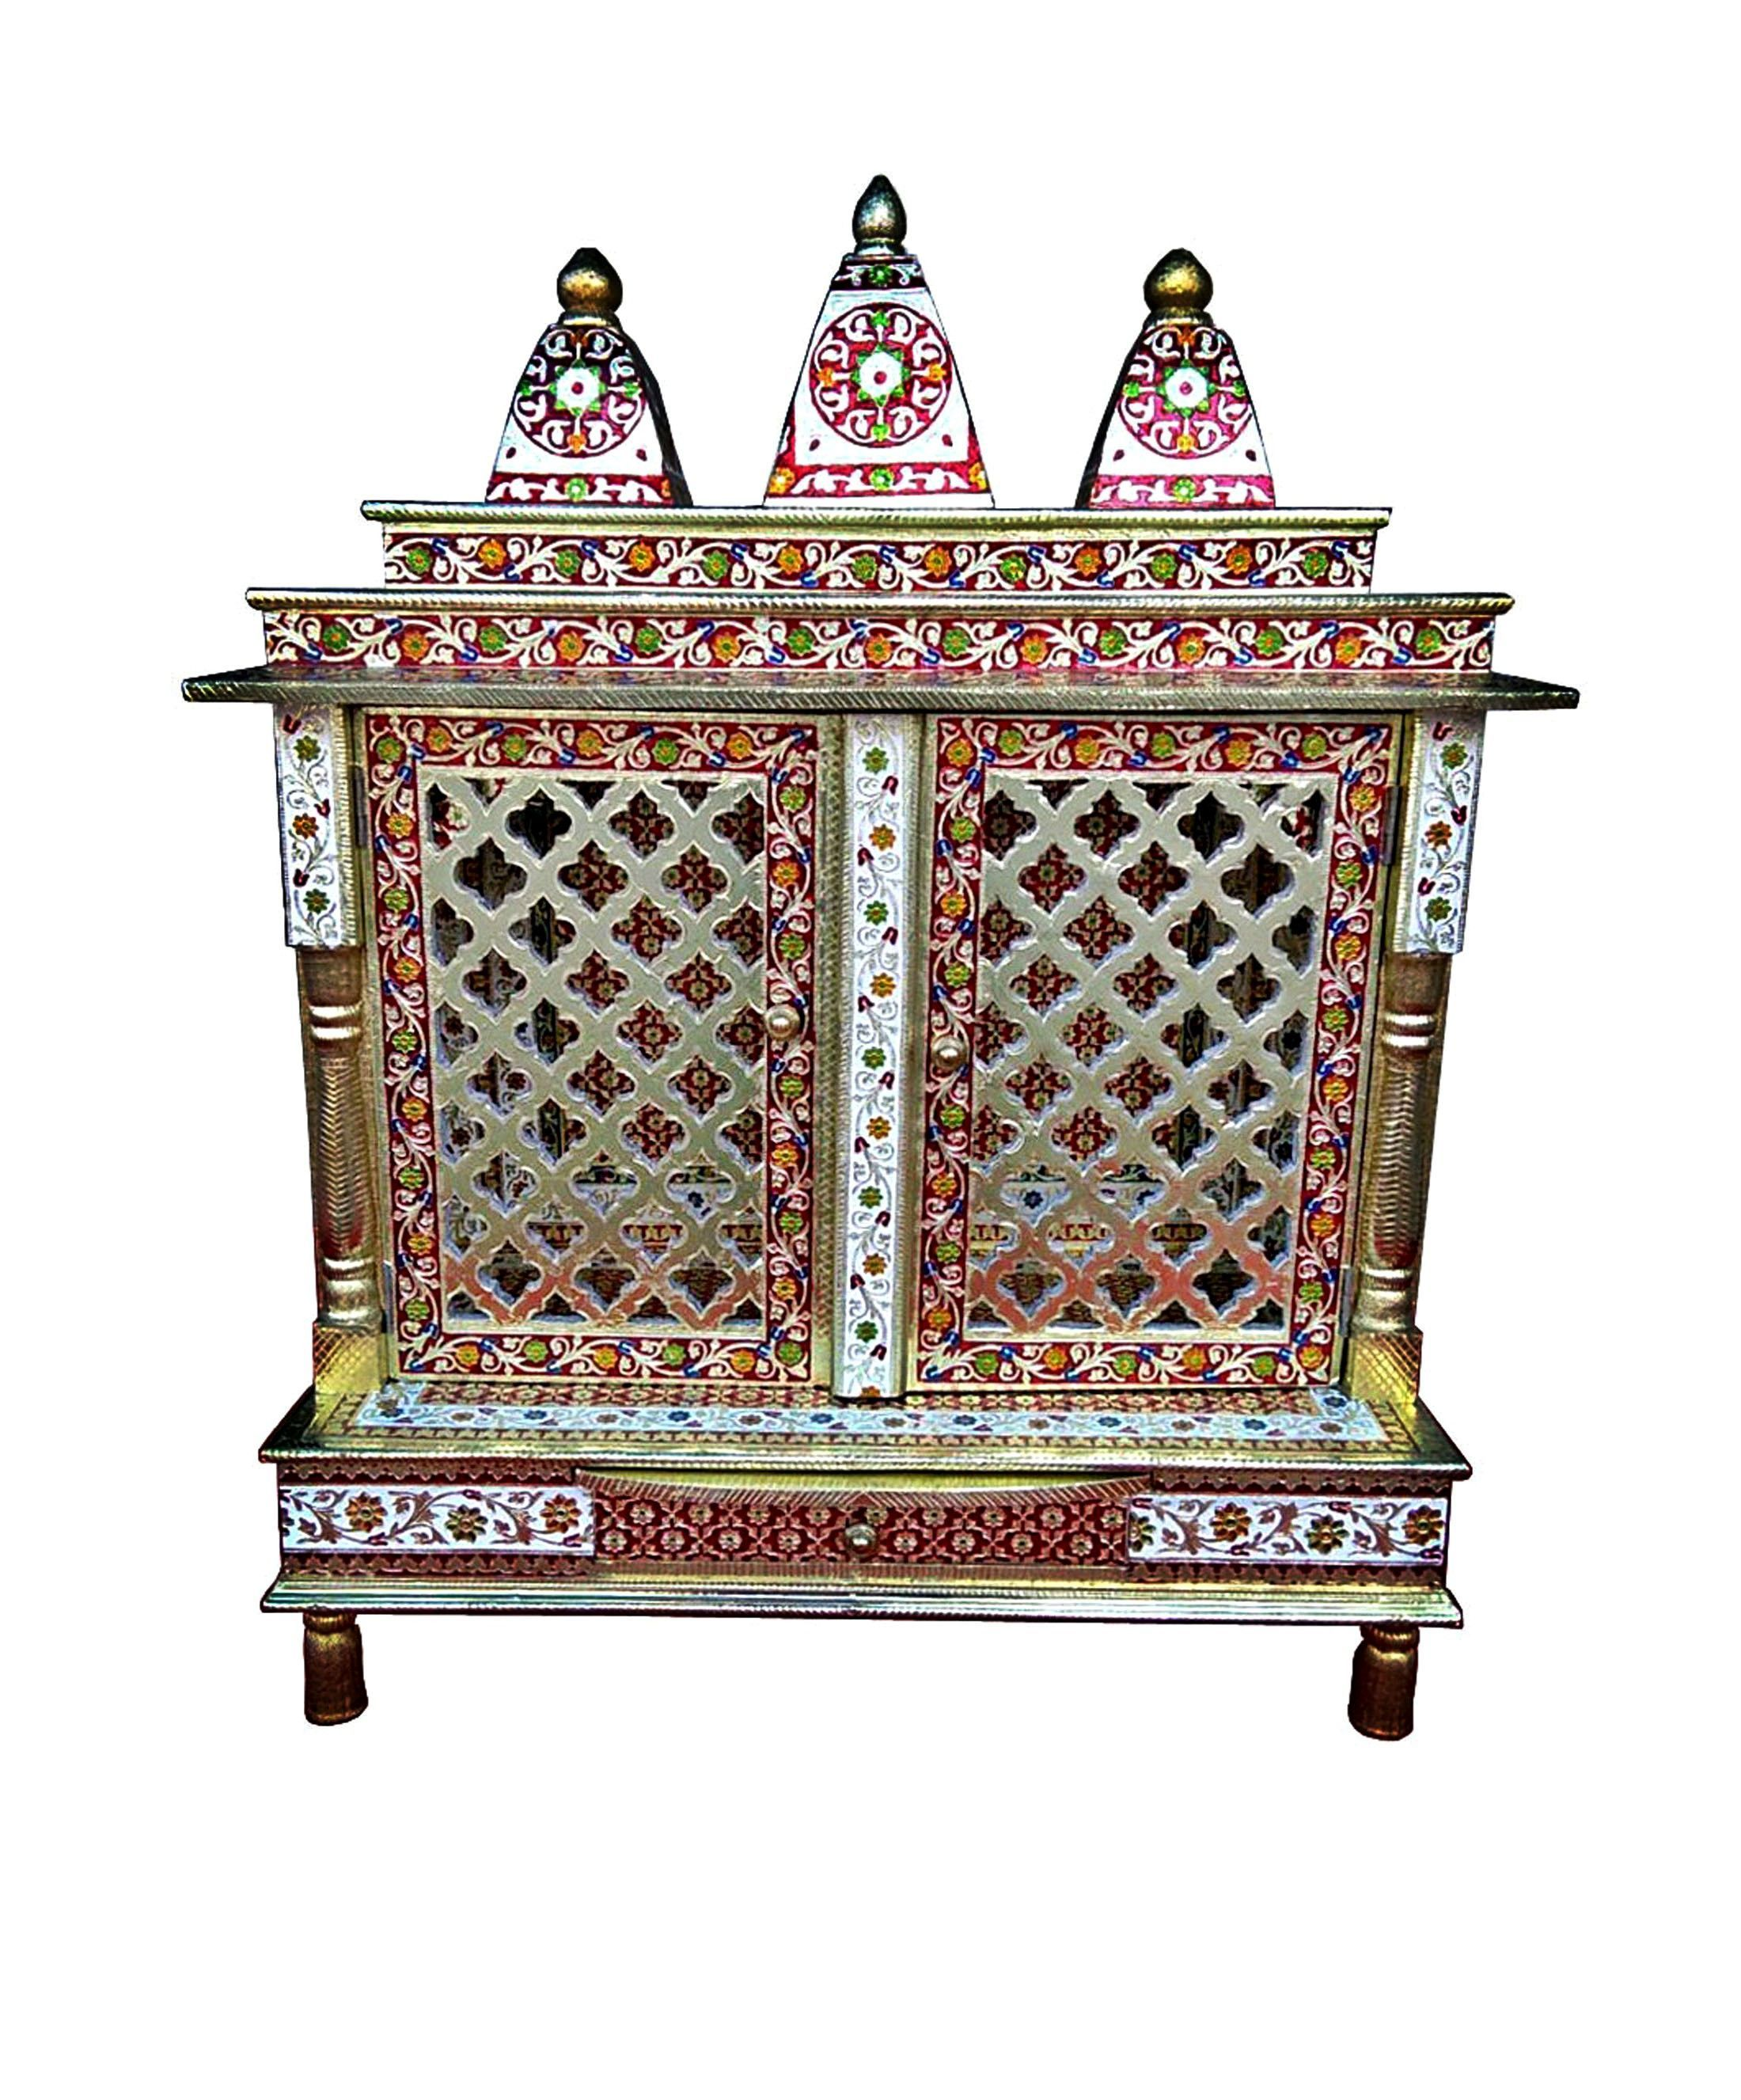 e99dc163e Extra Ordinary Meenakari Work all over the Temple. Meenakari is a very  popular art work of Rajasthan, India; It is an art of metal enameling and  decorating ...